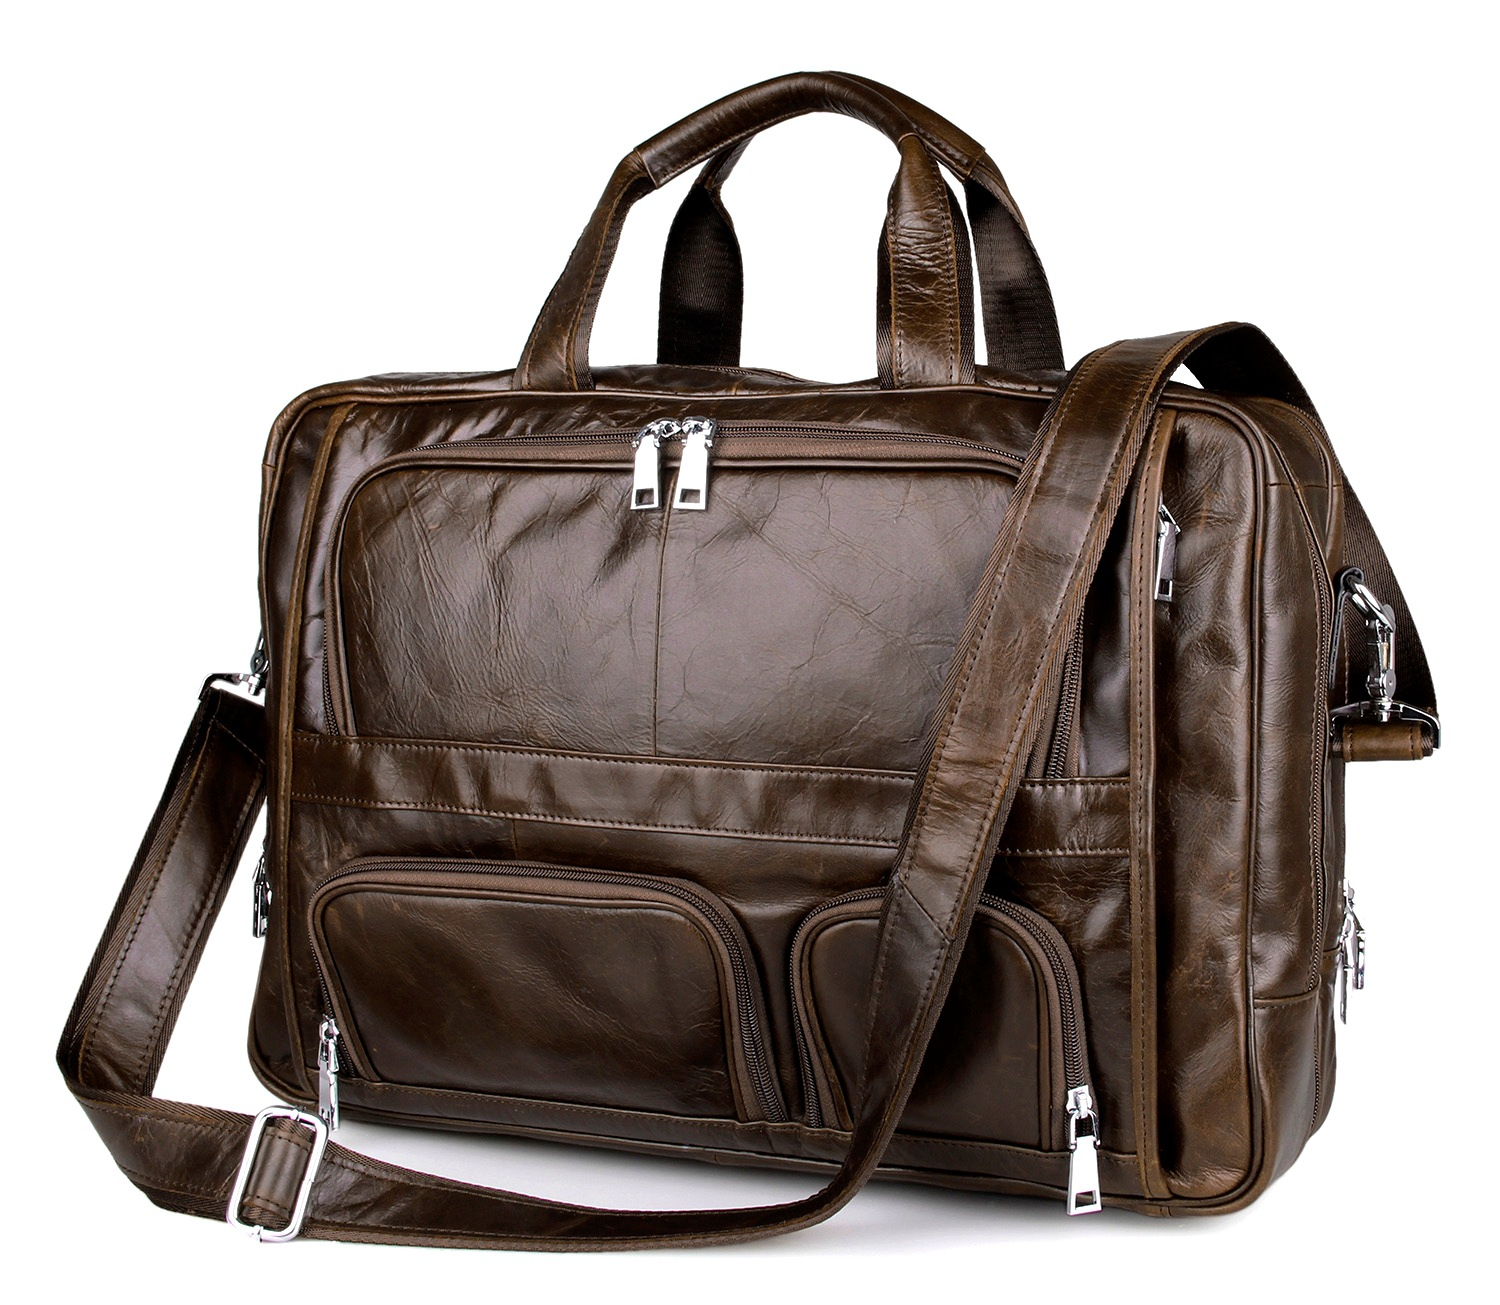 Europe and The United States Customs Leather Business Men's Bags Large Leather Men's Bags 17-inch Laptop Bag Vegetan Leather free shipping europe and the united states set foot business mens casual shoes